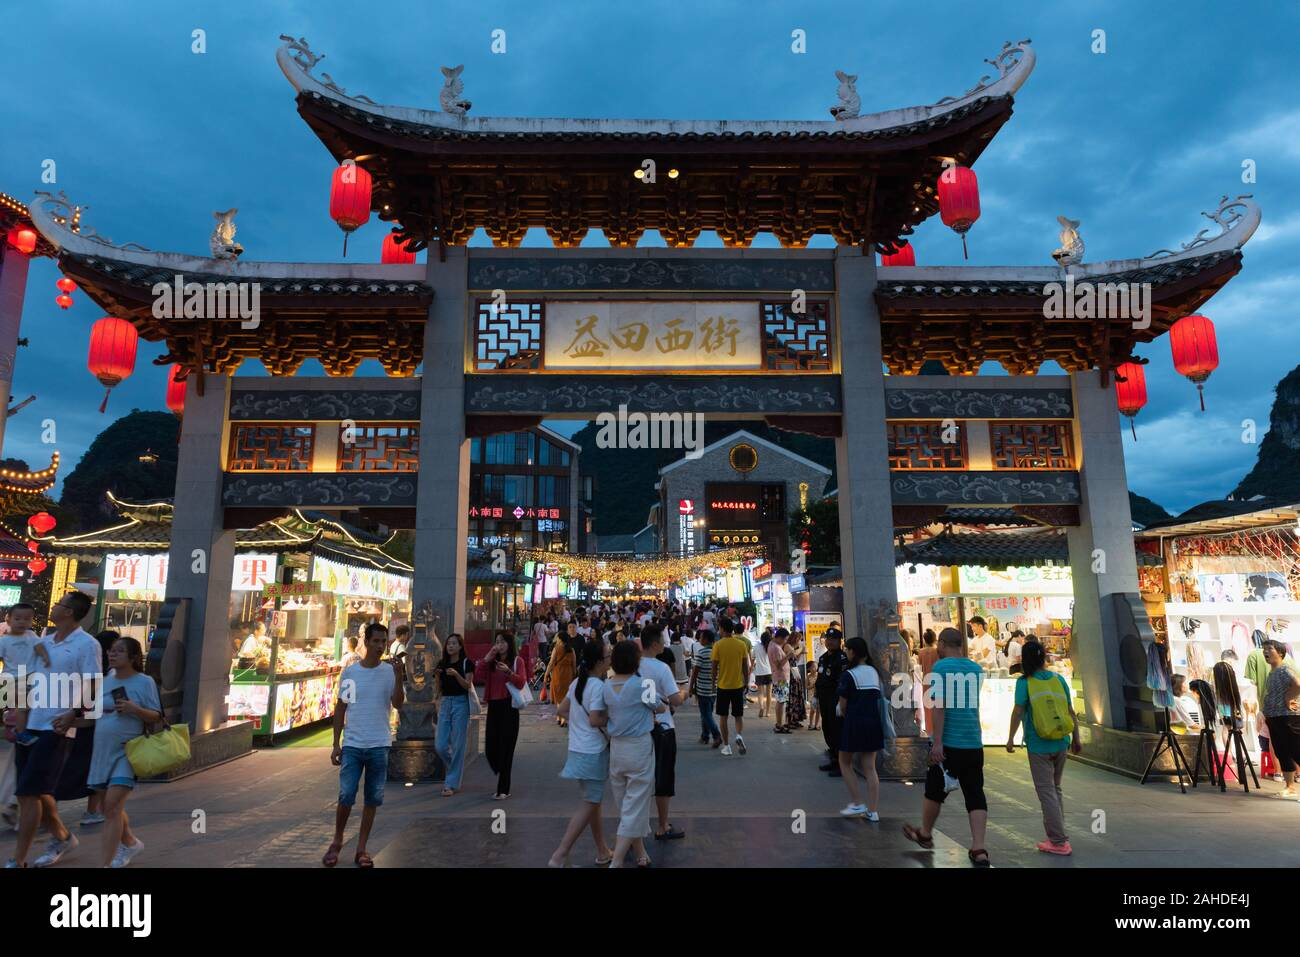 Shopping street of Yangshuo. Yangshuo is a popular tourist county and it is a city near to Guilin Guangxi. The main shopping streets of Yangshuo. Stock Photo